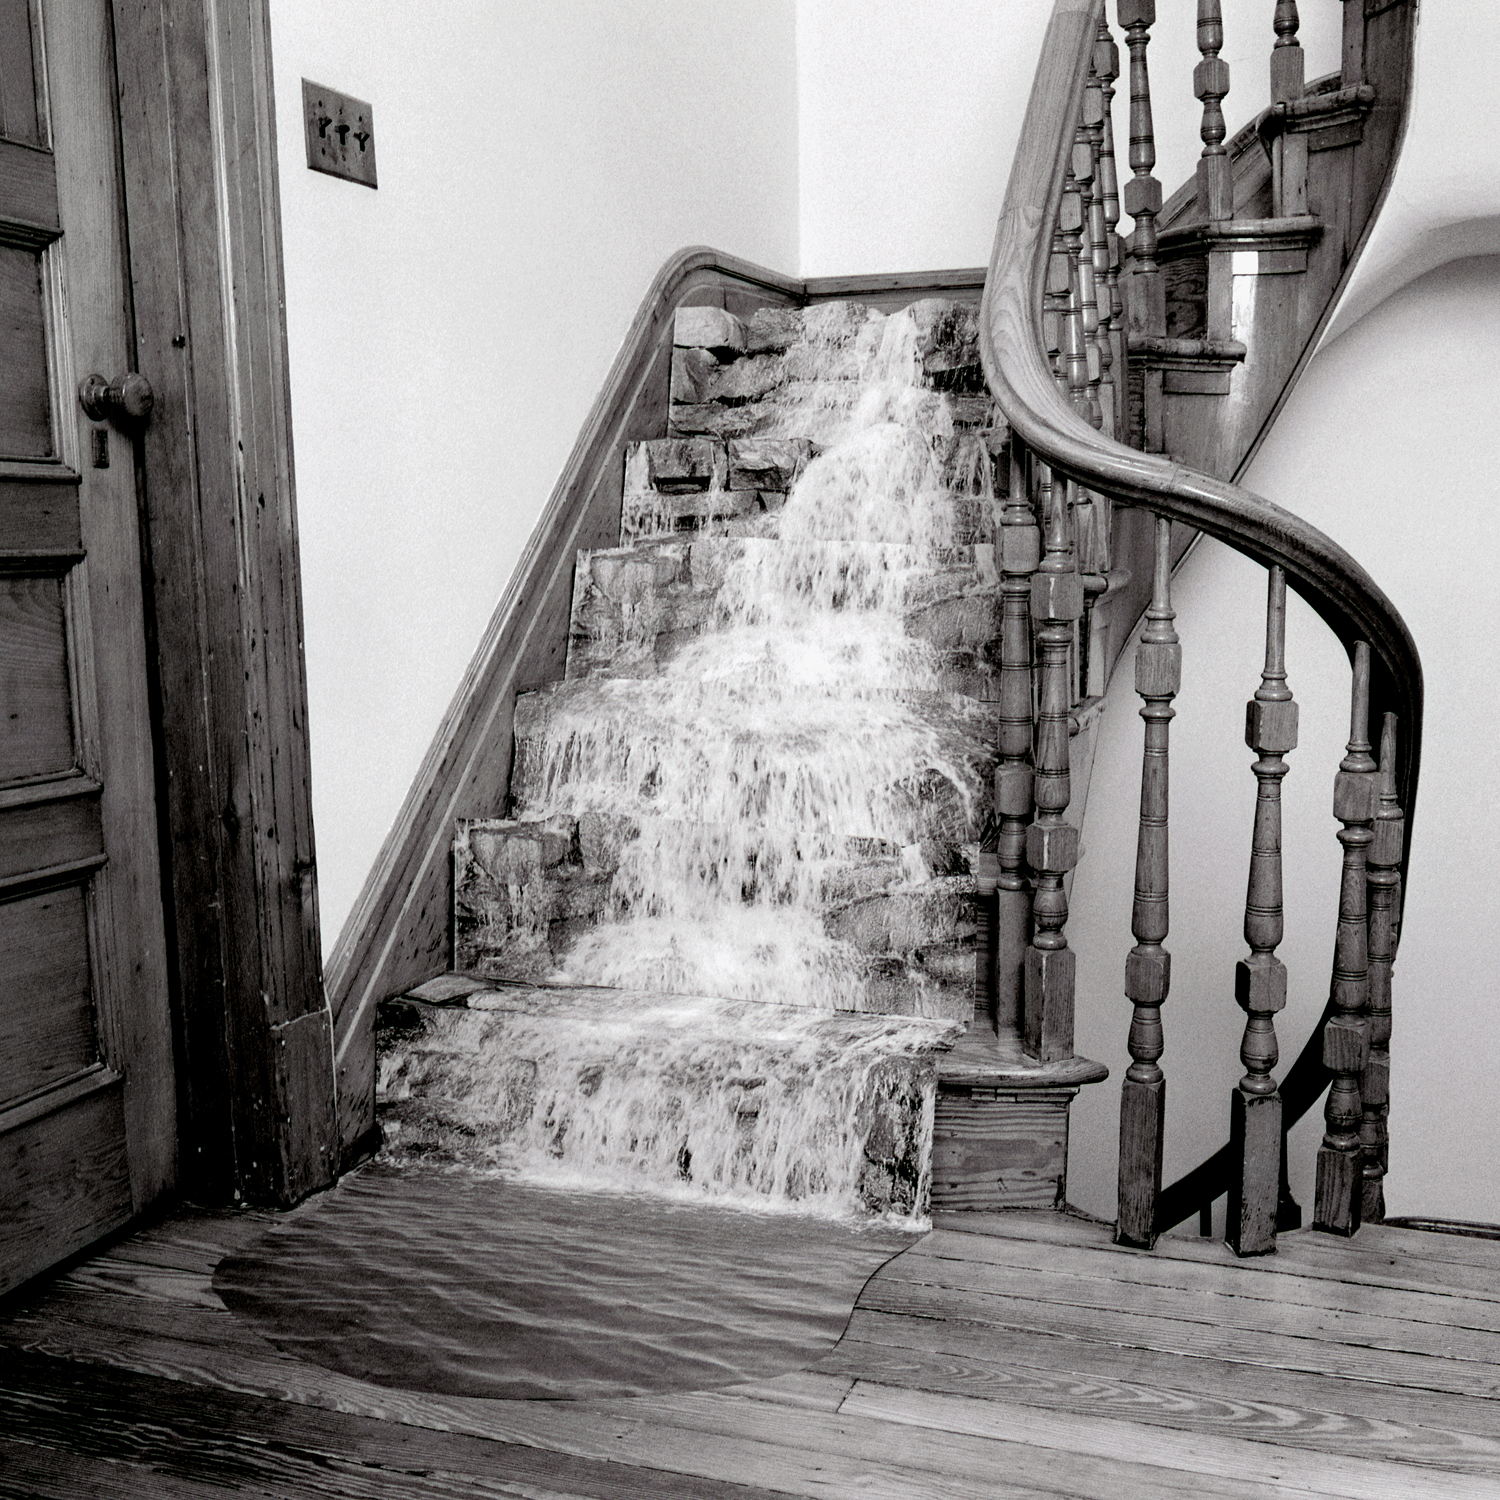 Stairwell, 2006, archival pigment print on paper